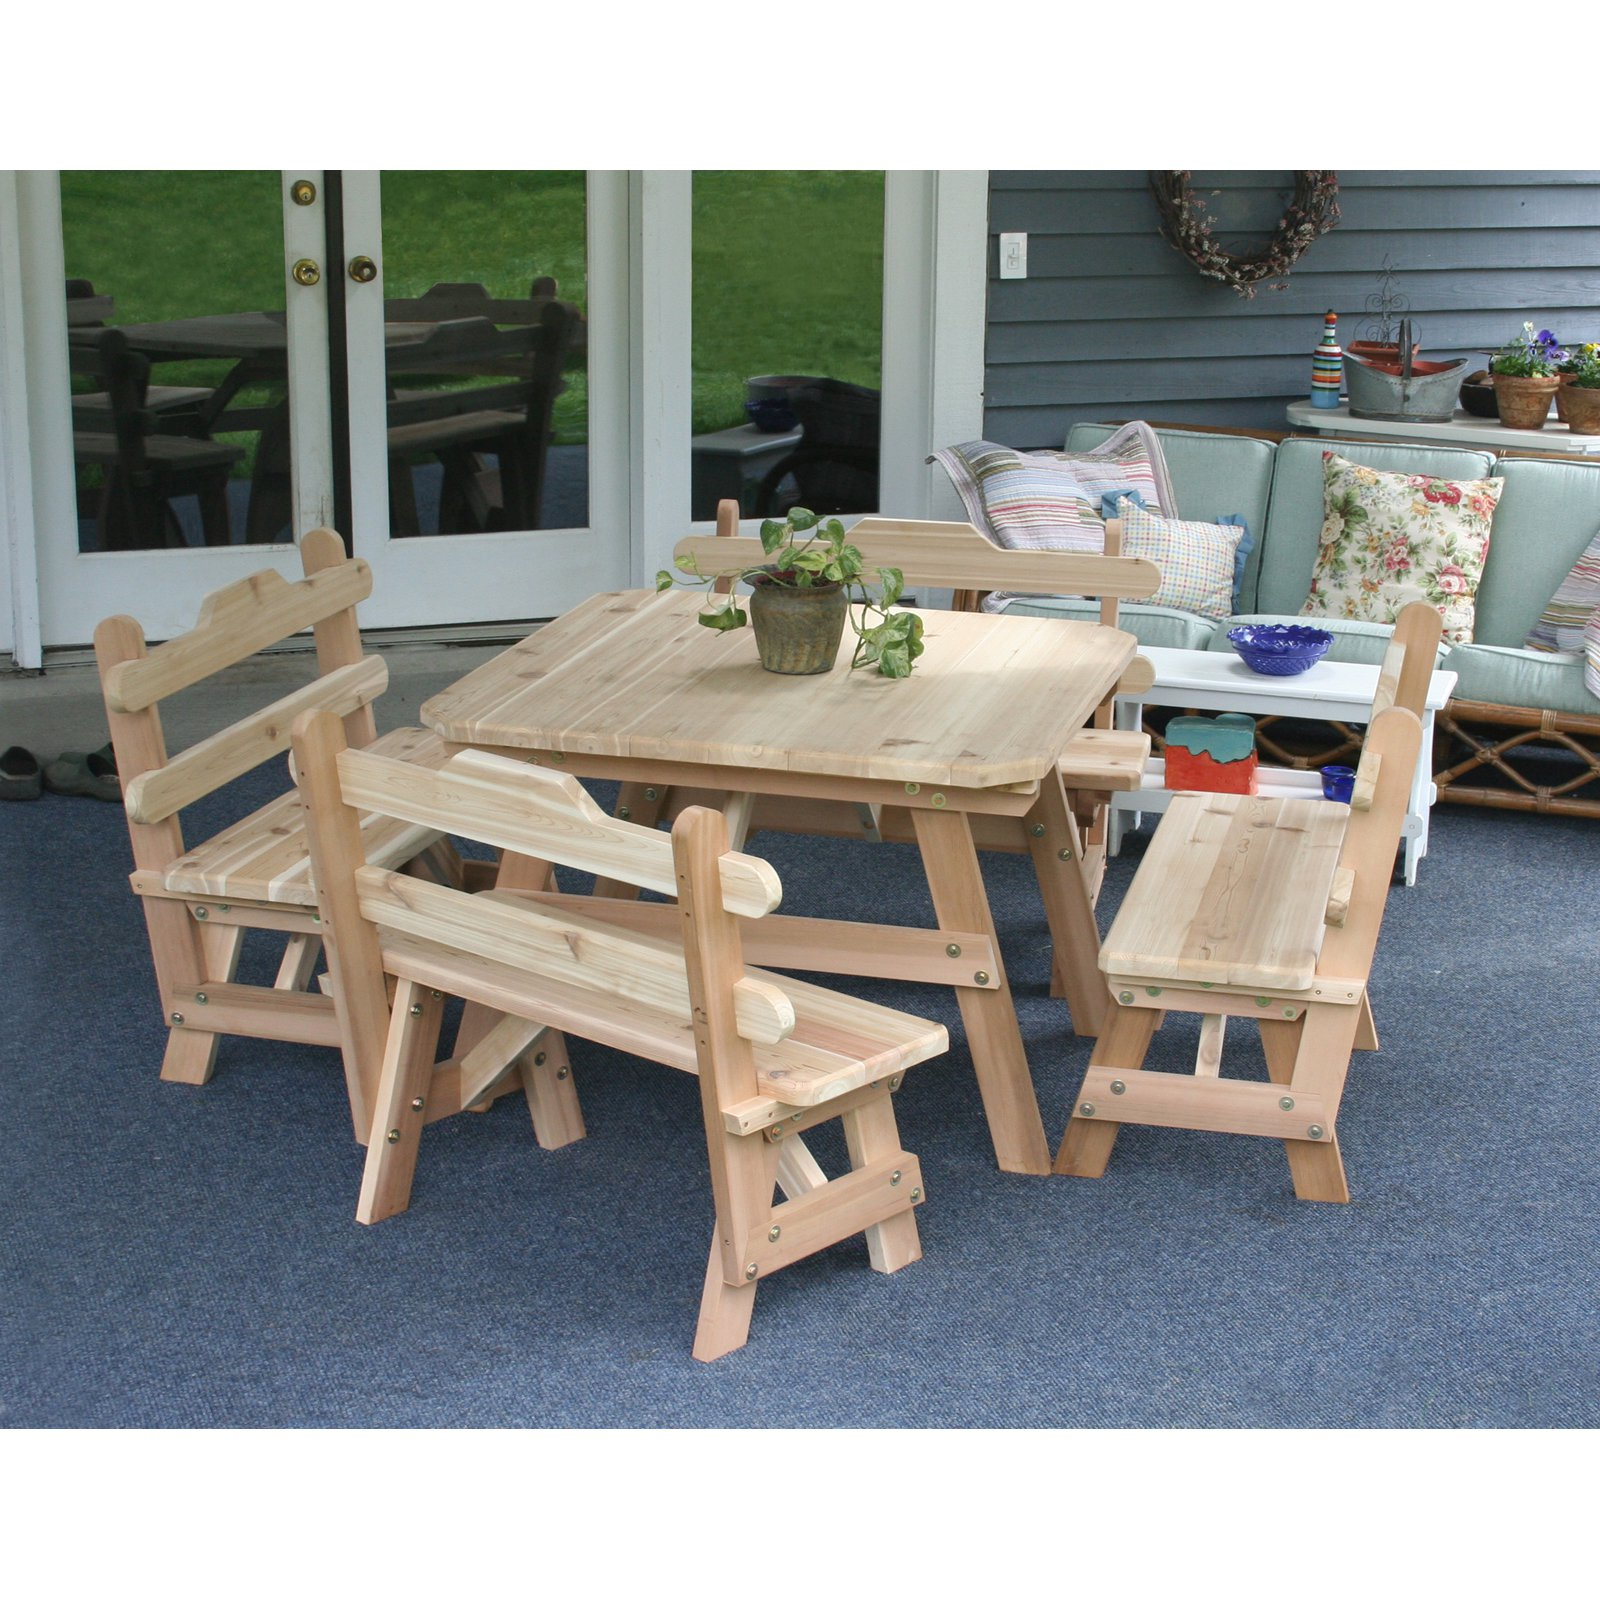 Creekvine Designs Cedar Four Square Picnic Table And Bench Set - Square picnic table with benches